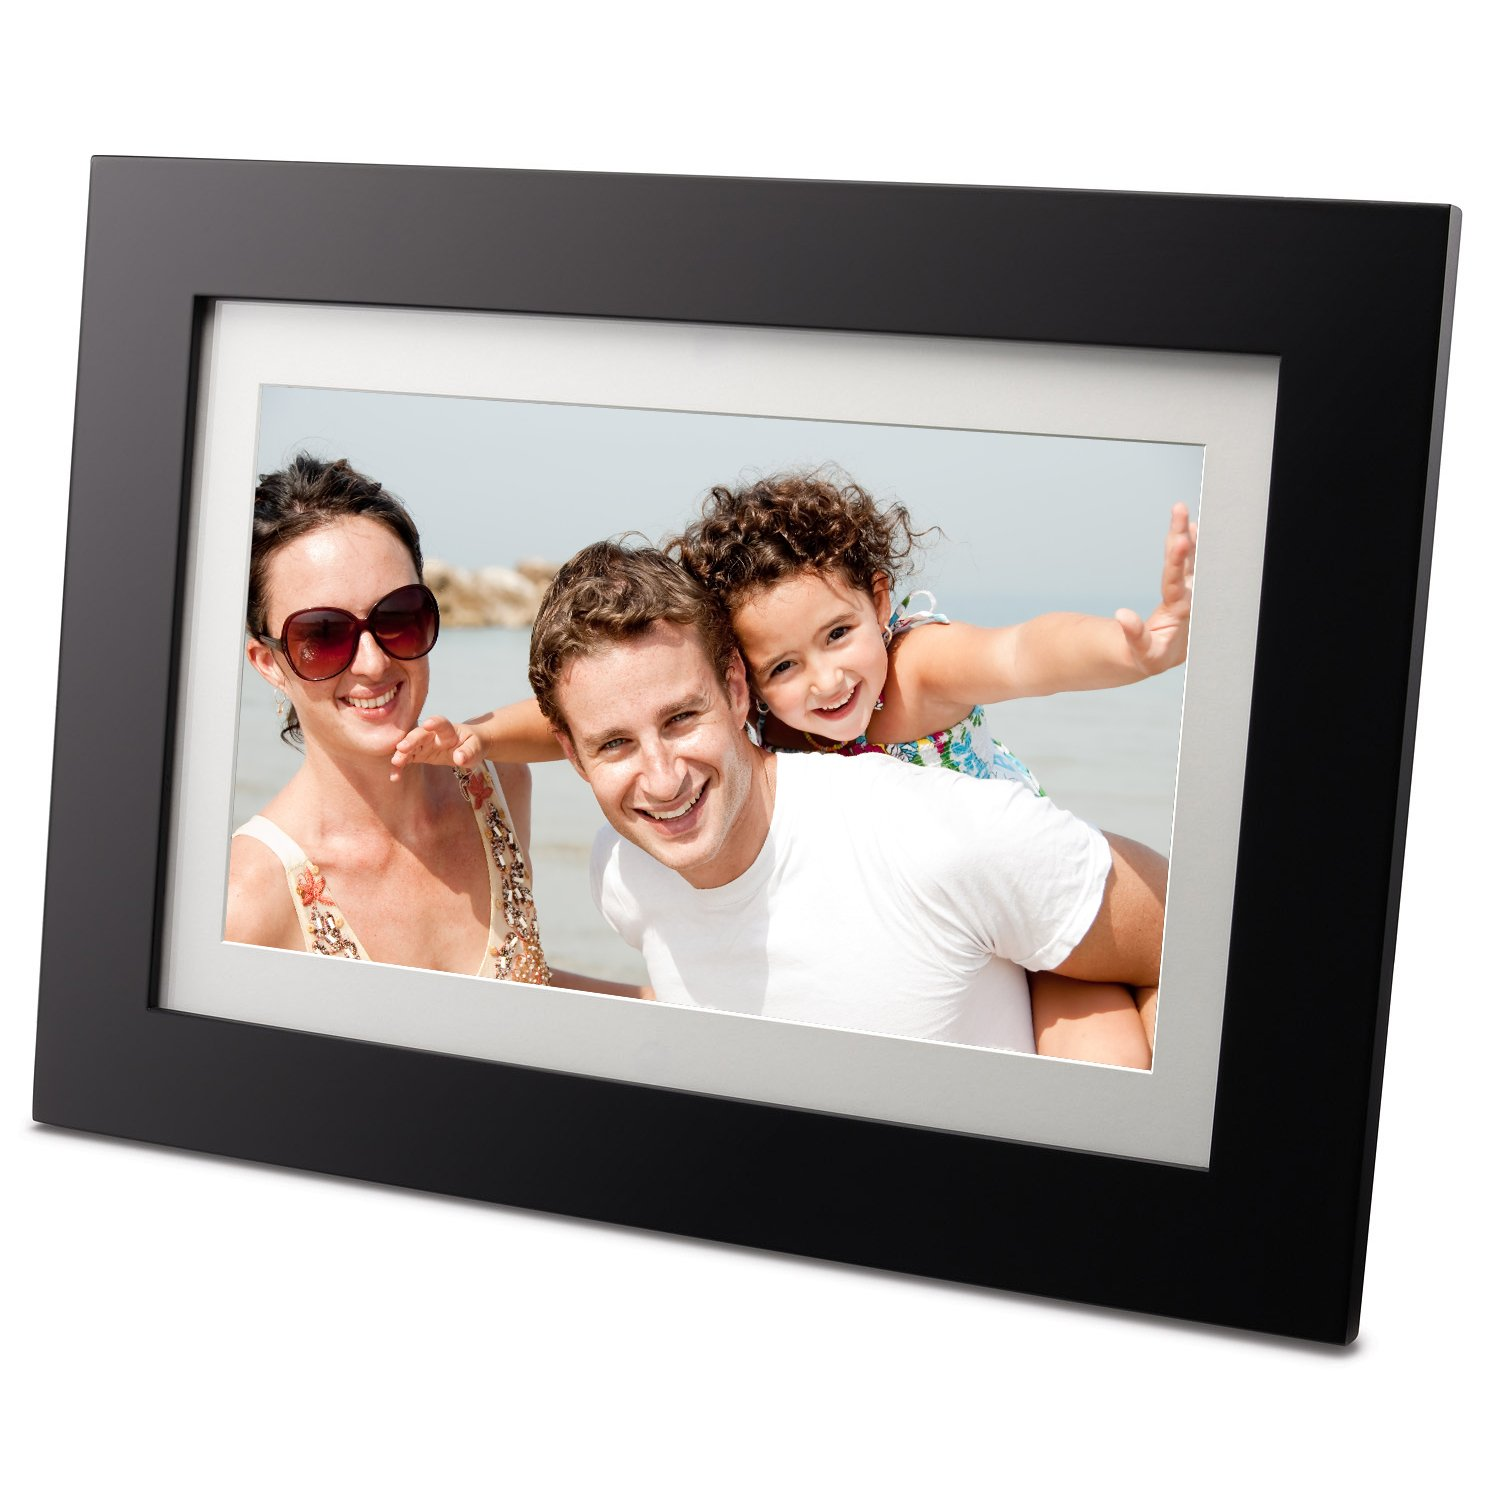 amazoncom viewsonic vfd1027w 11 102 inch digital photo frame with 128 mb internal memory digital picture frames camera photo